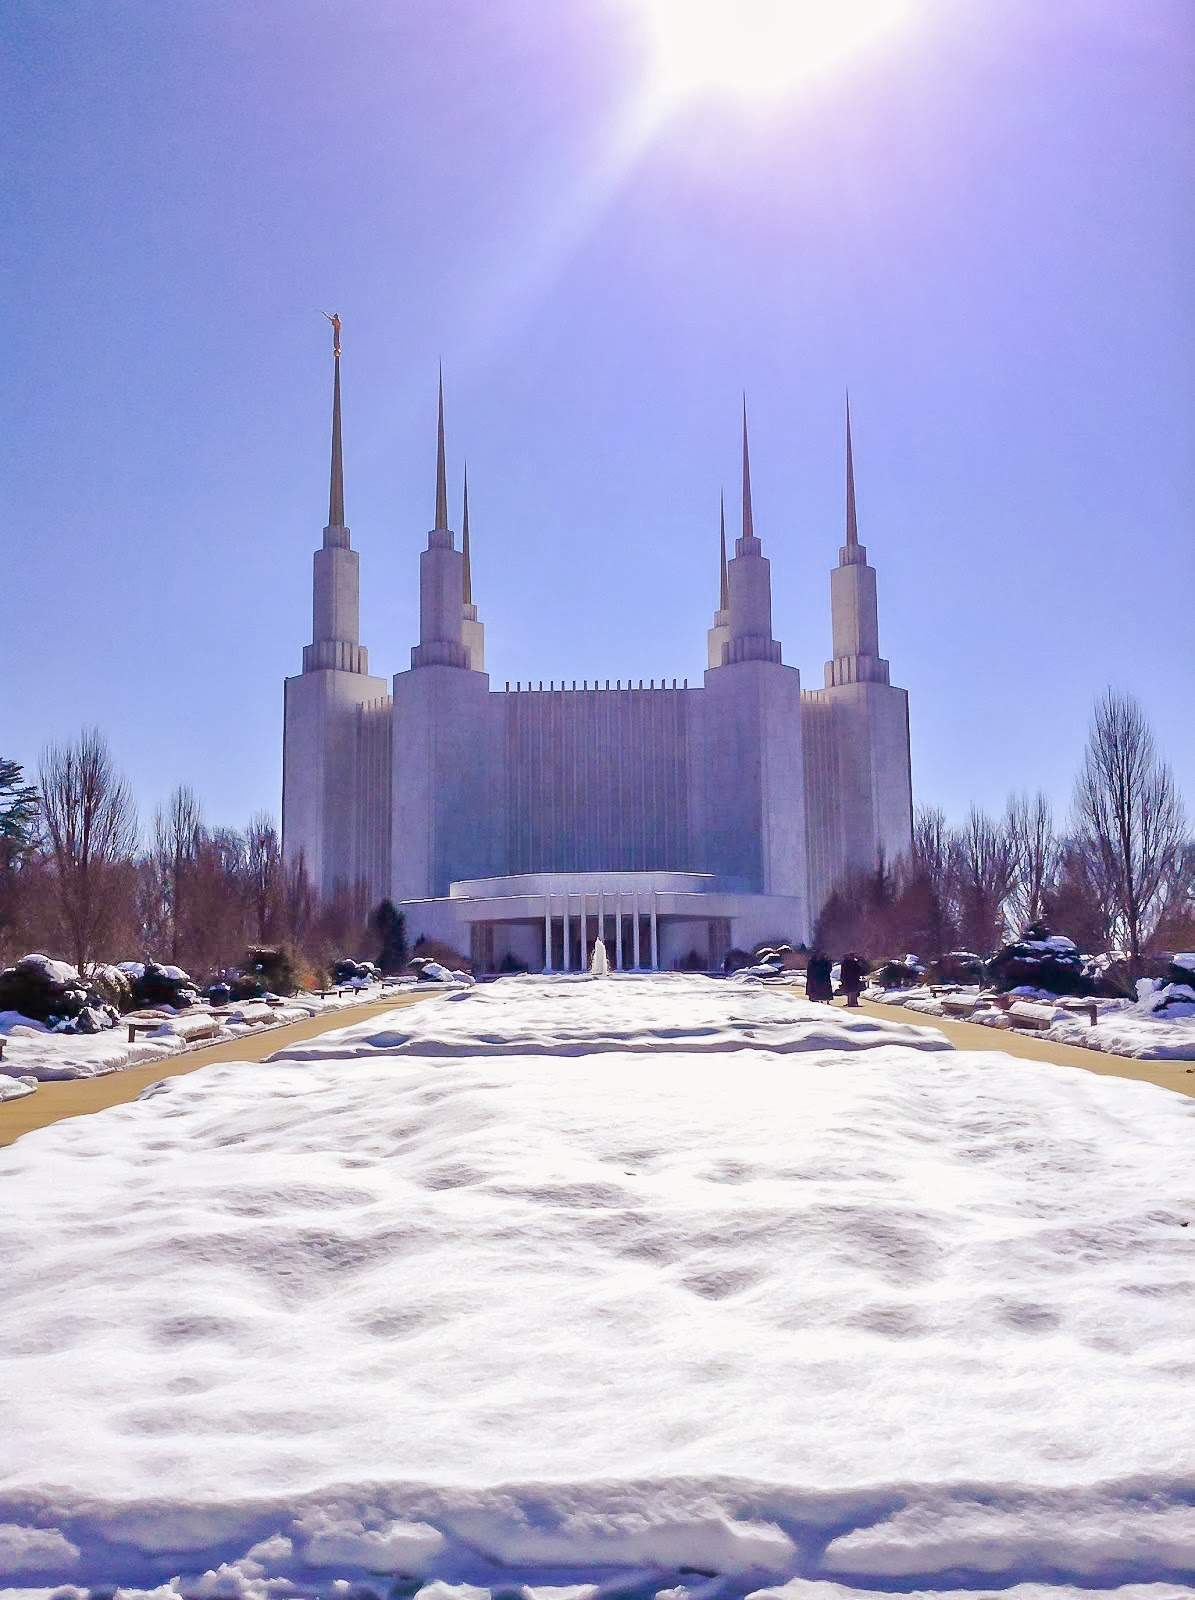 Snow LDS Washington D.C. Temple Kensington, MD